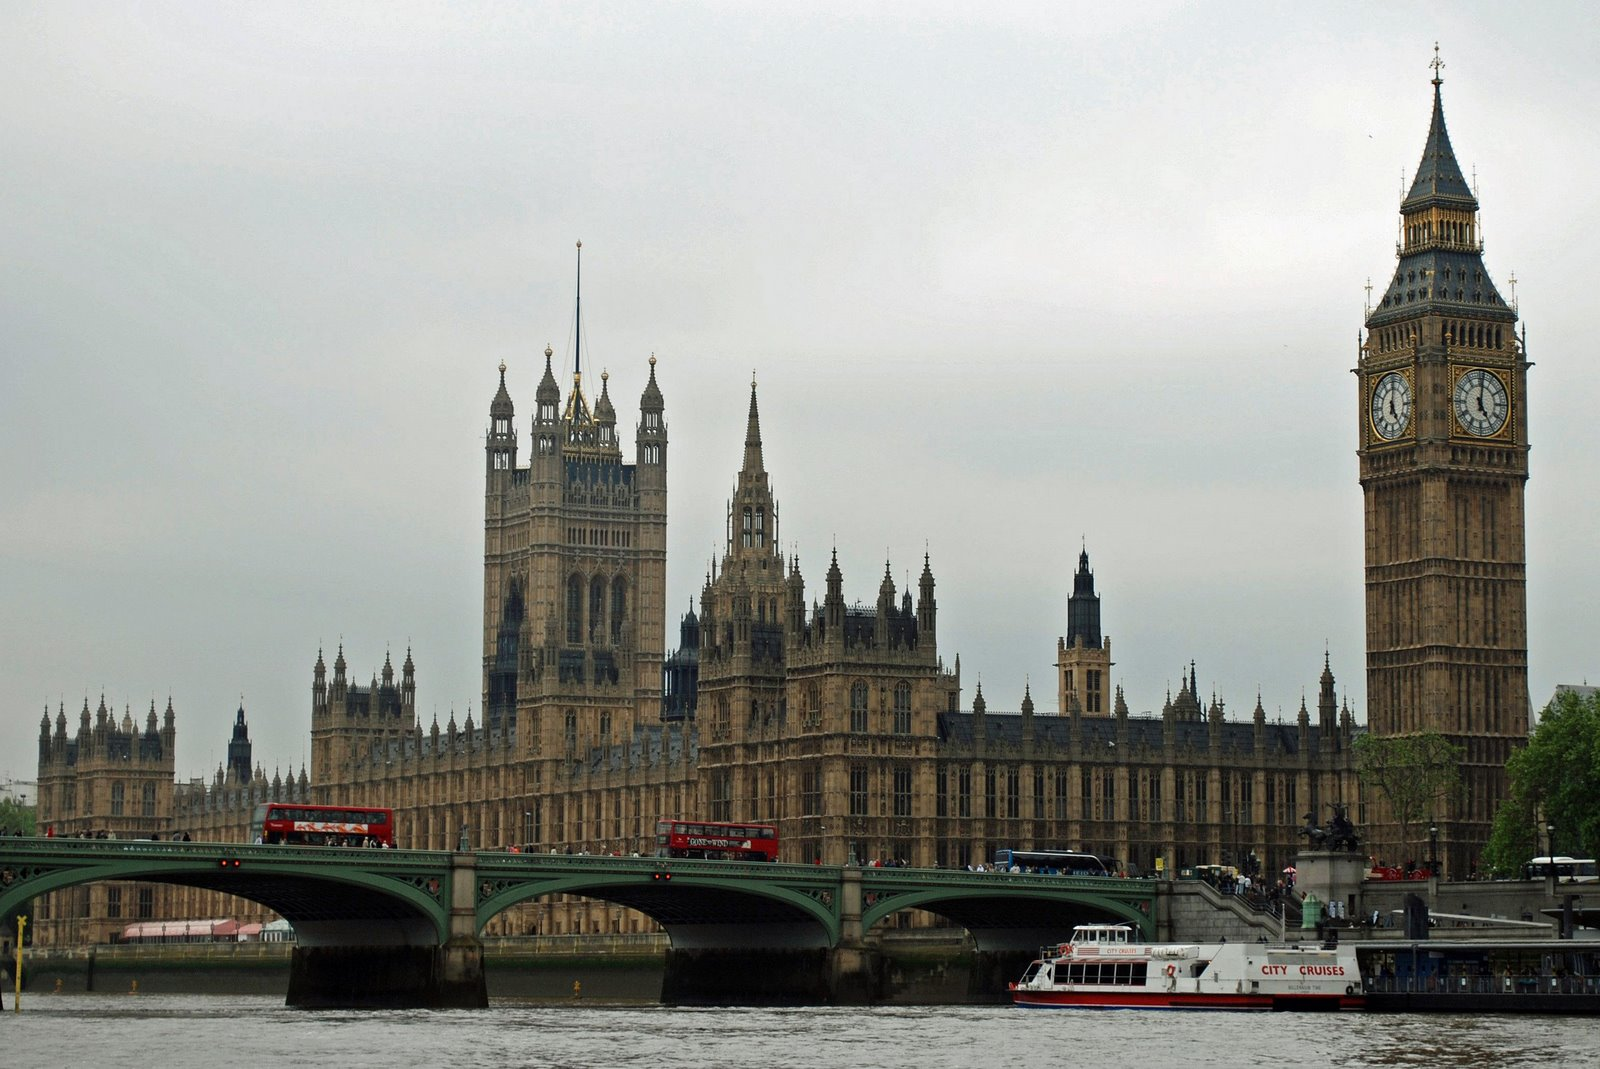 palace of westminster, or houses of parliament, and big ben, london